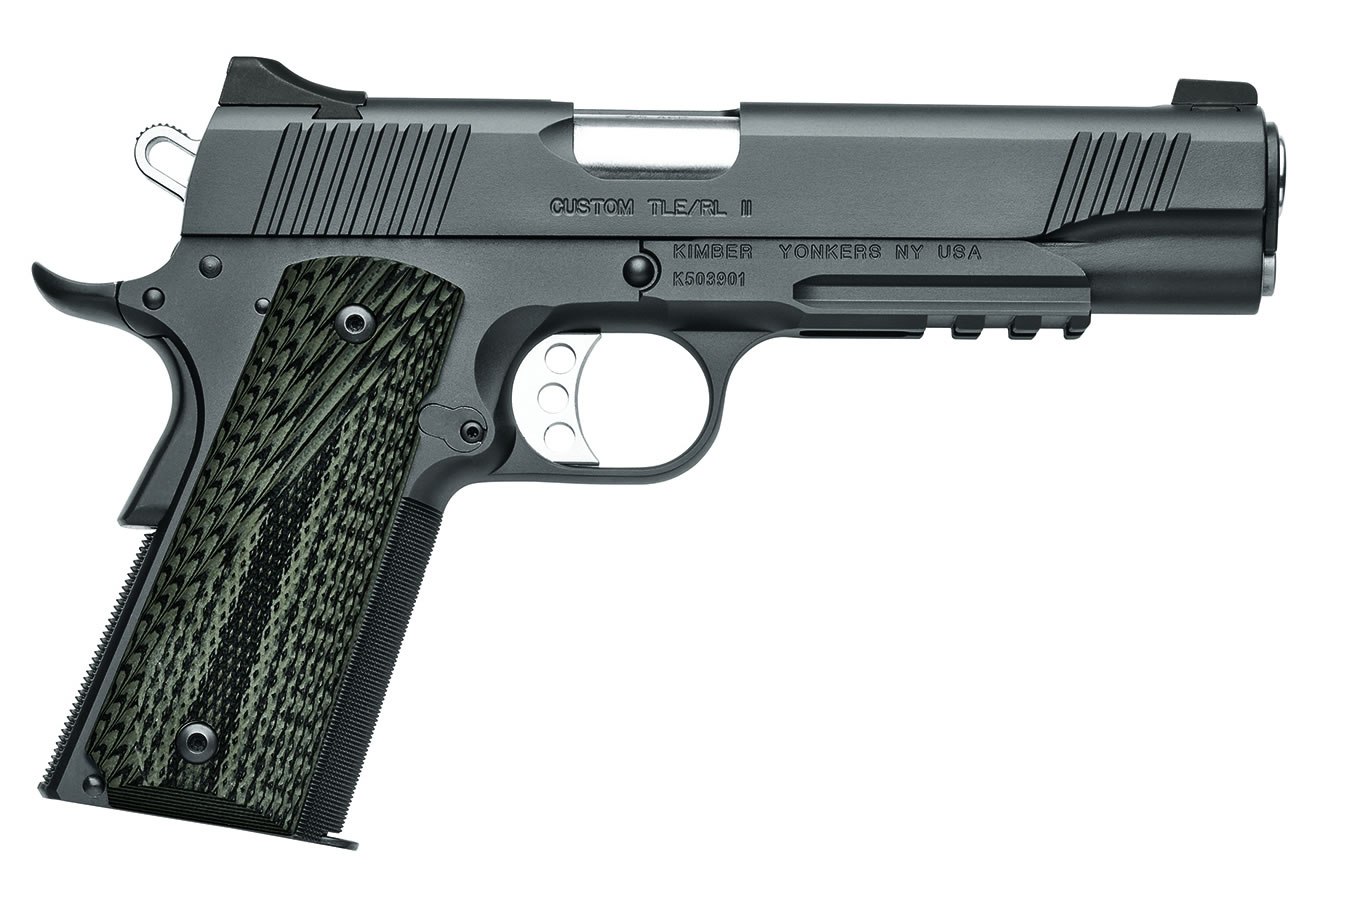 CUSTOM TLE/RL II 1911 10MM AUTO